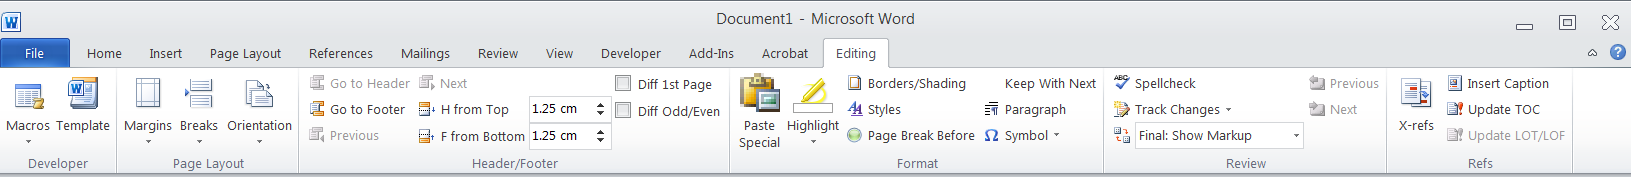 Word: Create a custom tab for your most-used tools